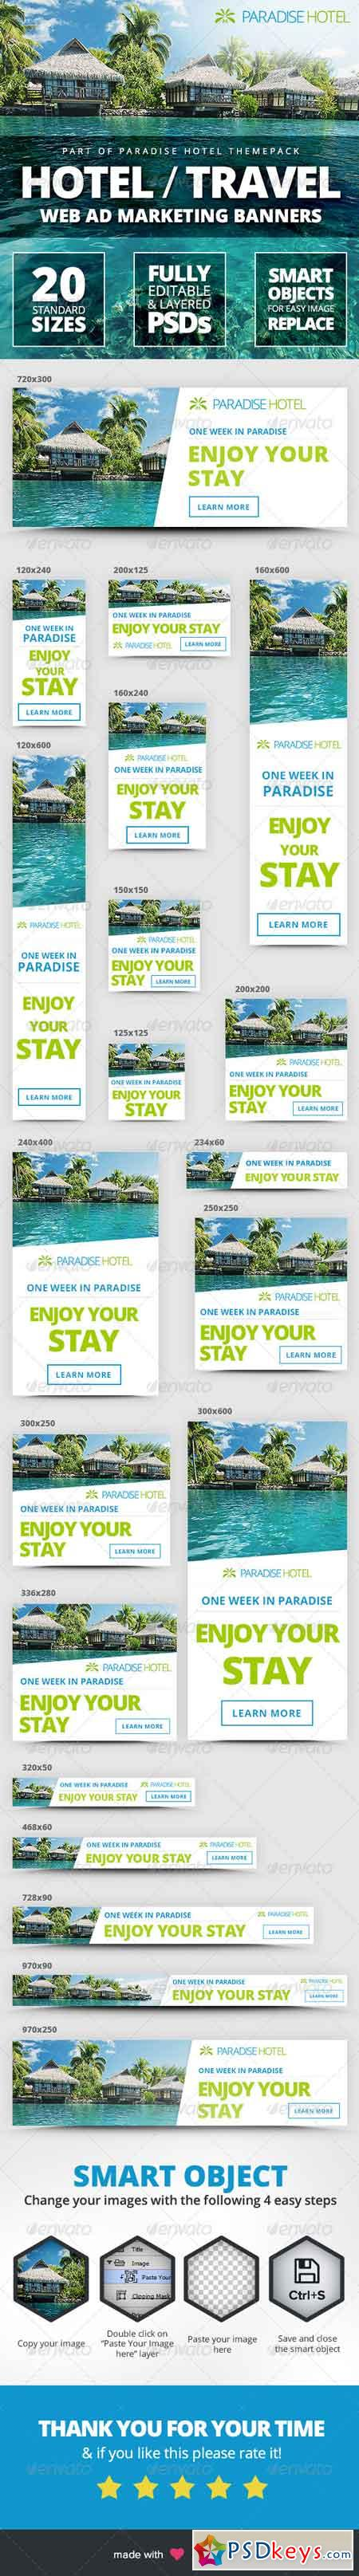 Web Elements Page 14 Free Download Photoshop Vector